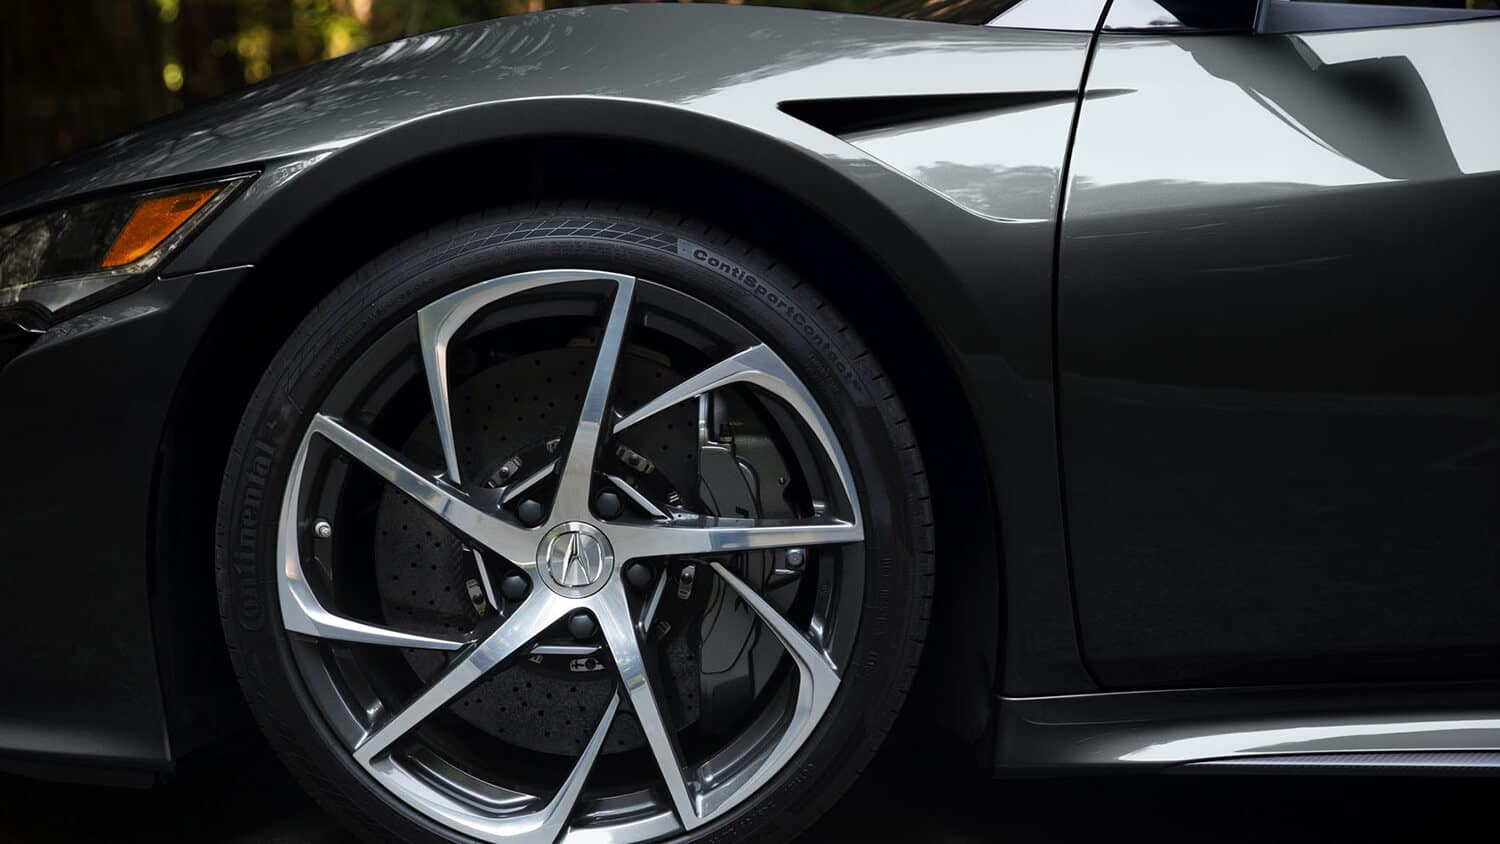 2019 Acura NSX Exterior Wheel Closeup